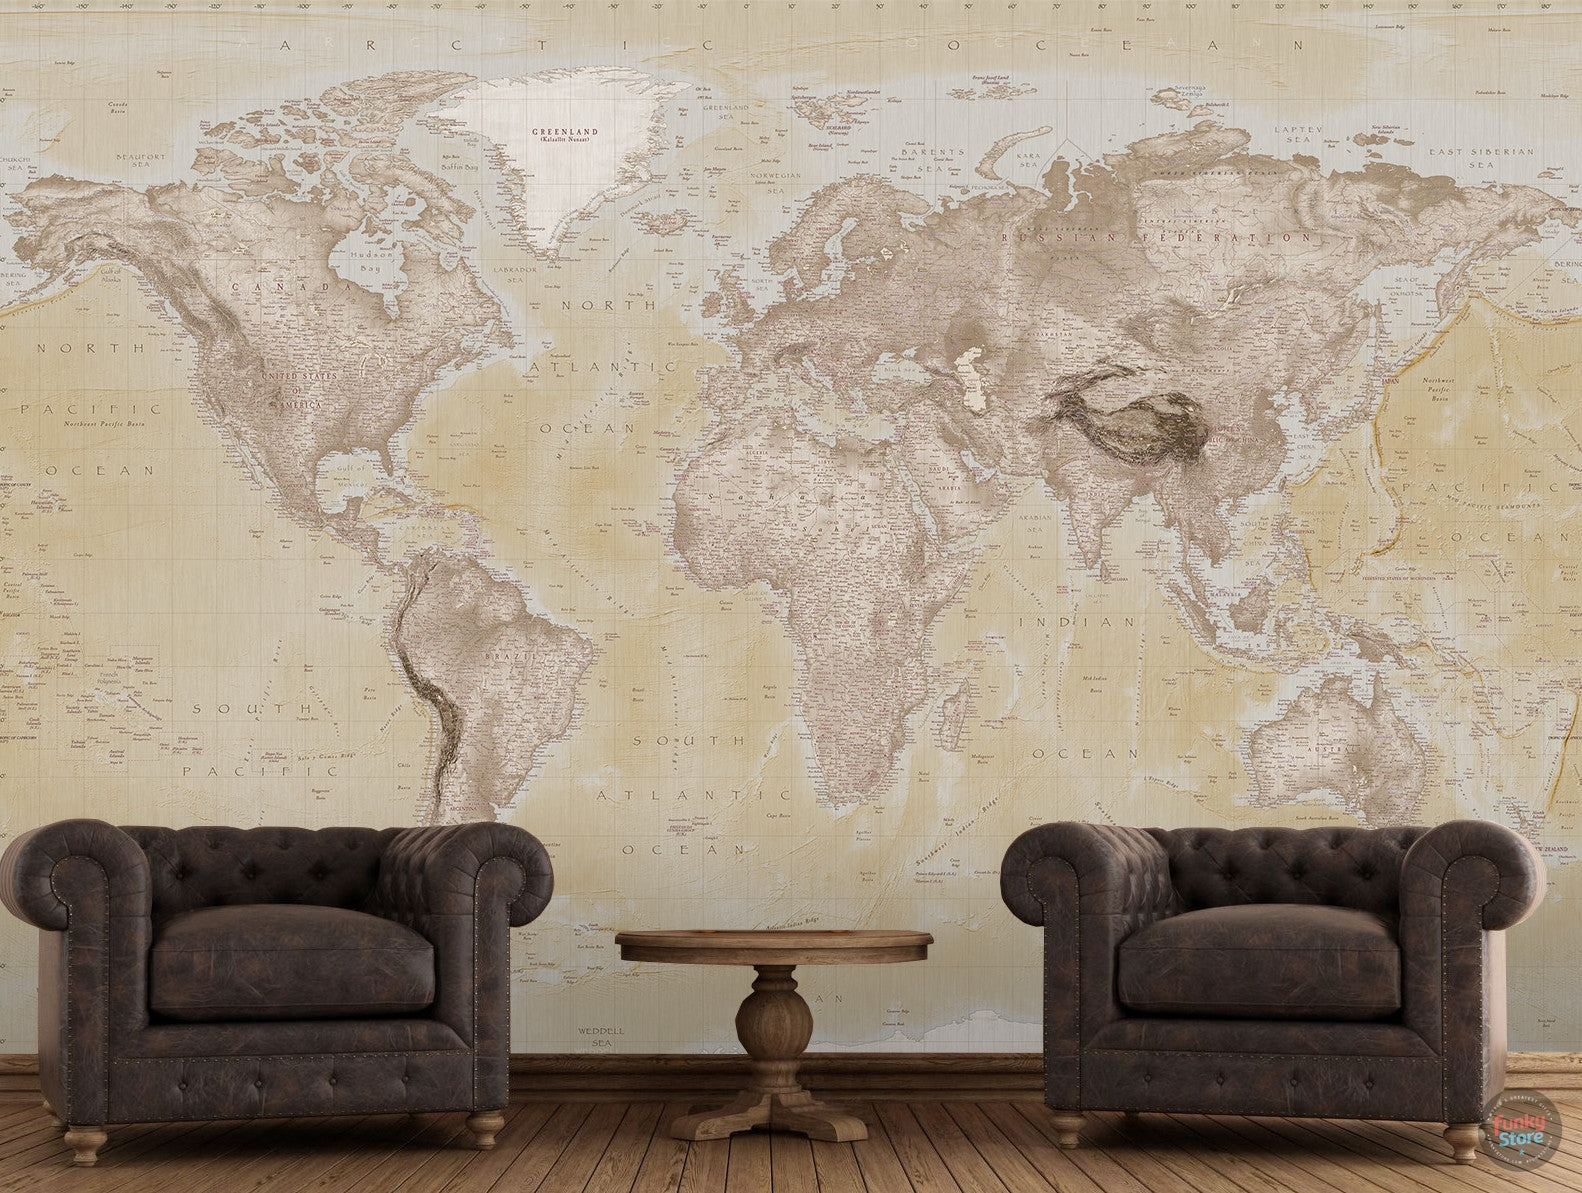 Neutral world map atlas wall mural funky store neutral world map atlas wall mural amipublicfo Gallery